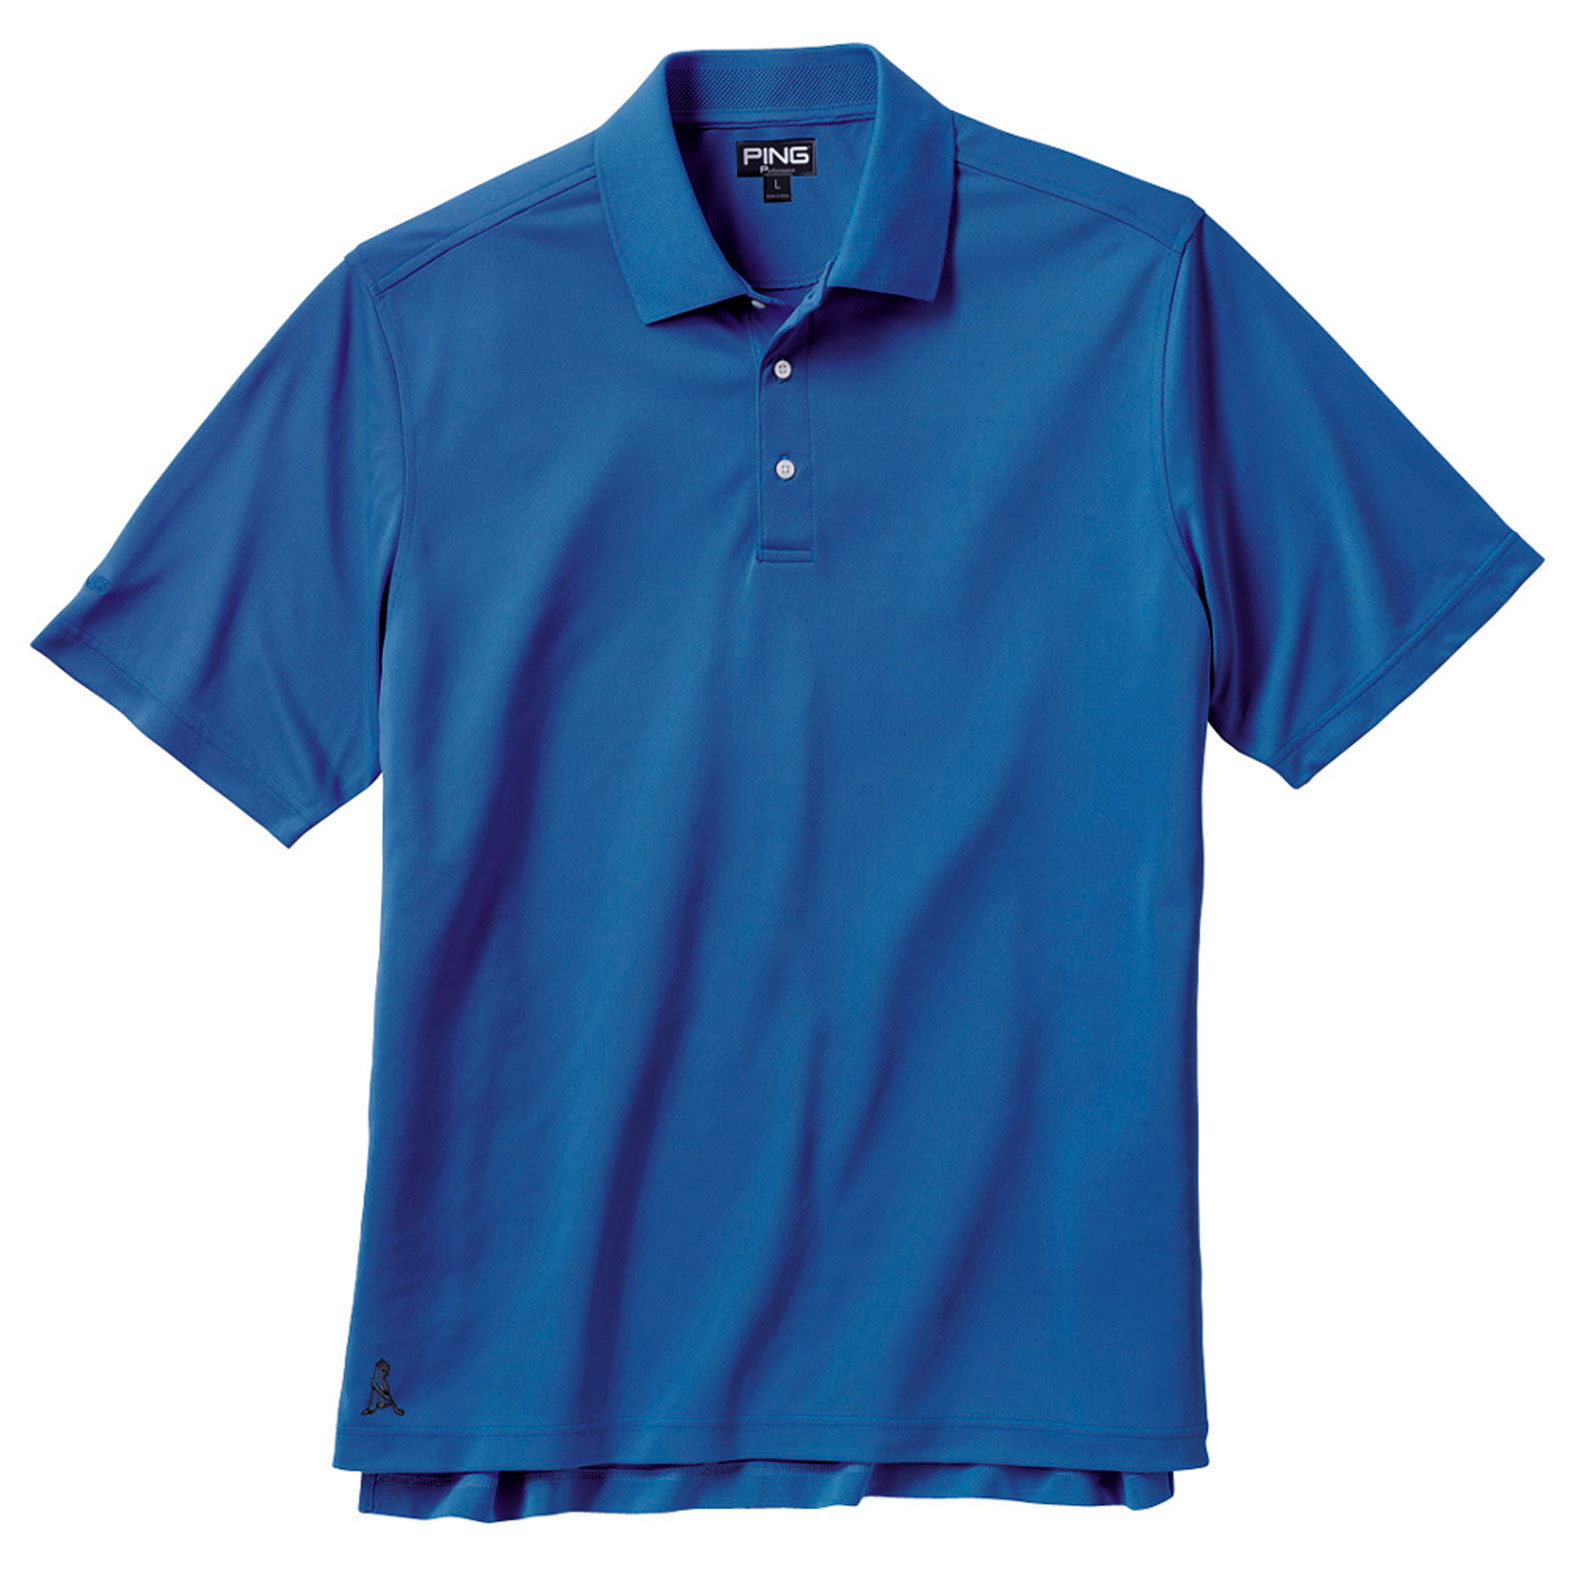 Ping Mens Albatross Performance Polo